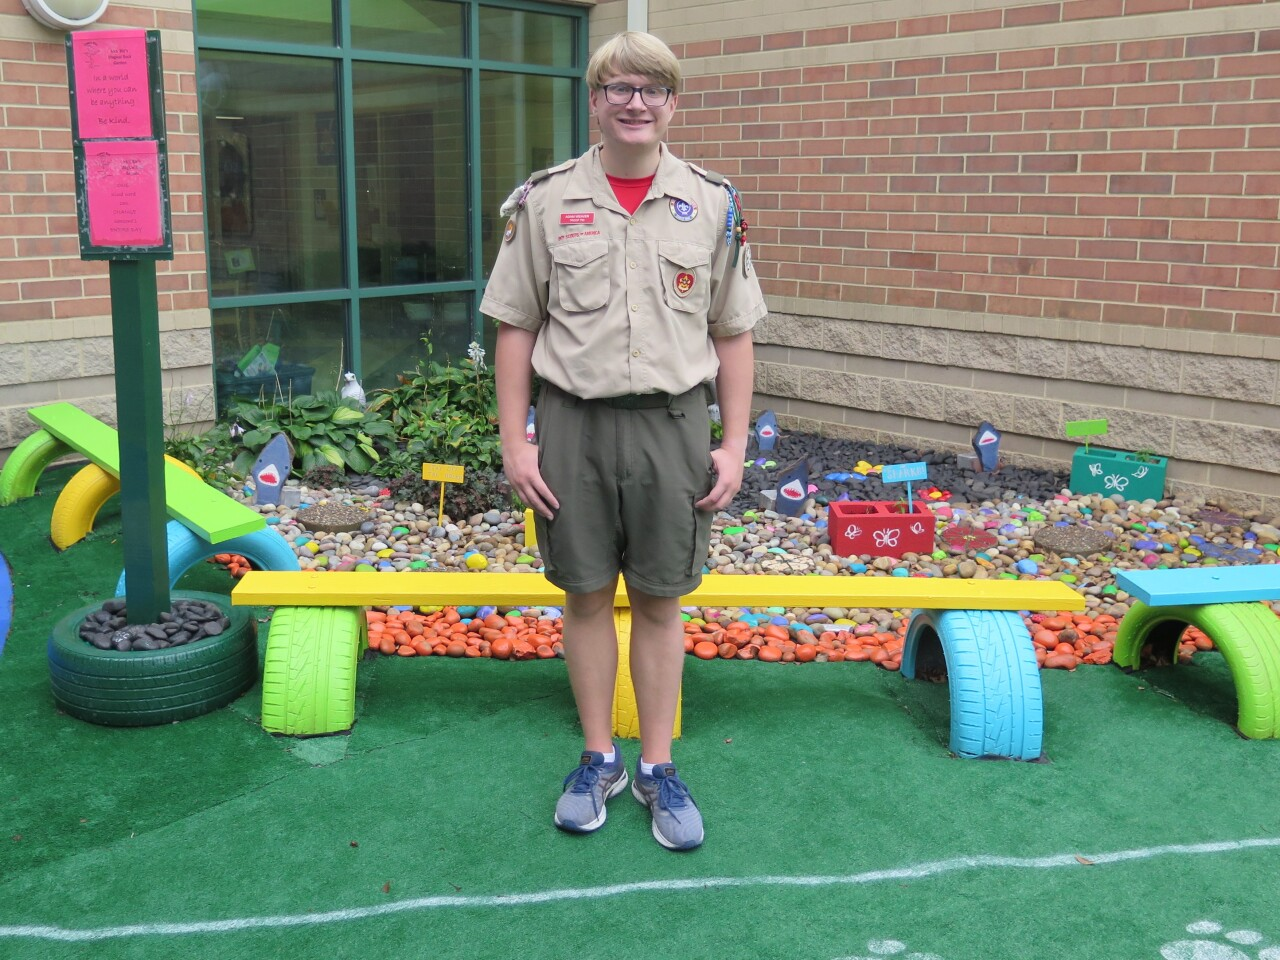 Adam Weaver poses in the MECC Moves courtyard. He has short, blond hair and glasses and is wearing his Boy Scout uniform.